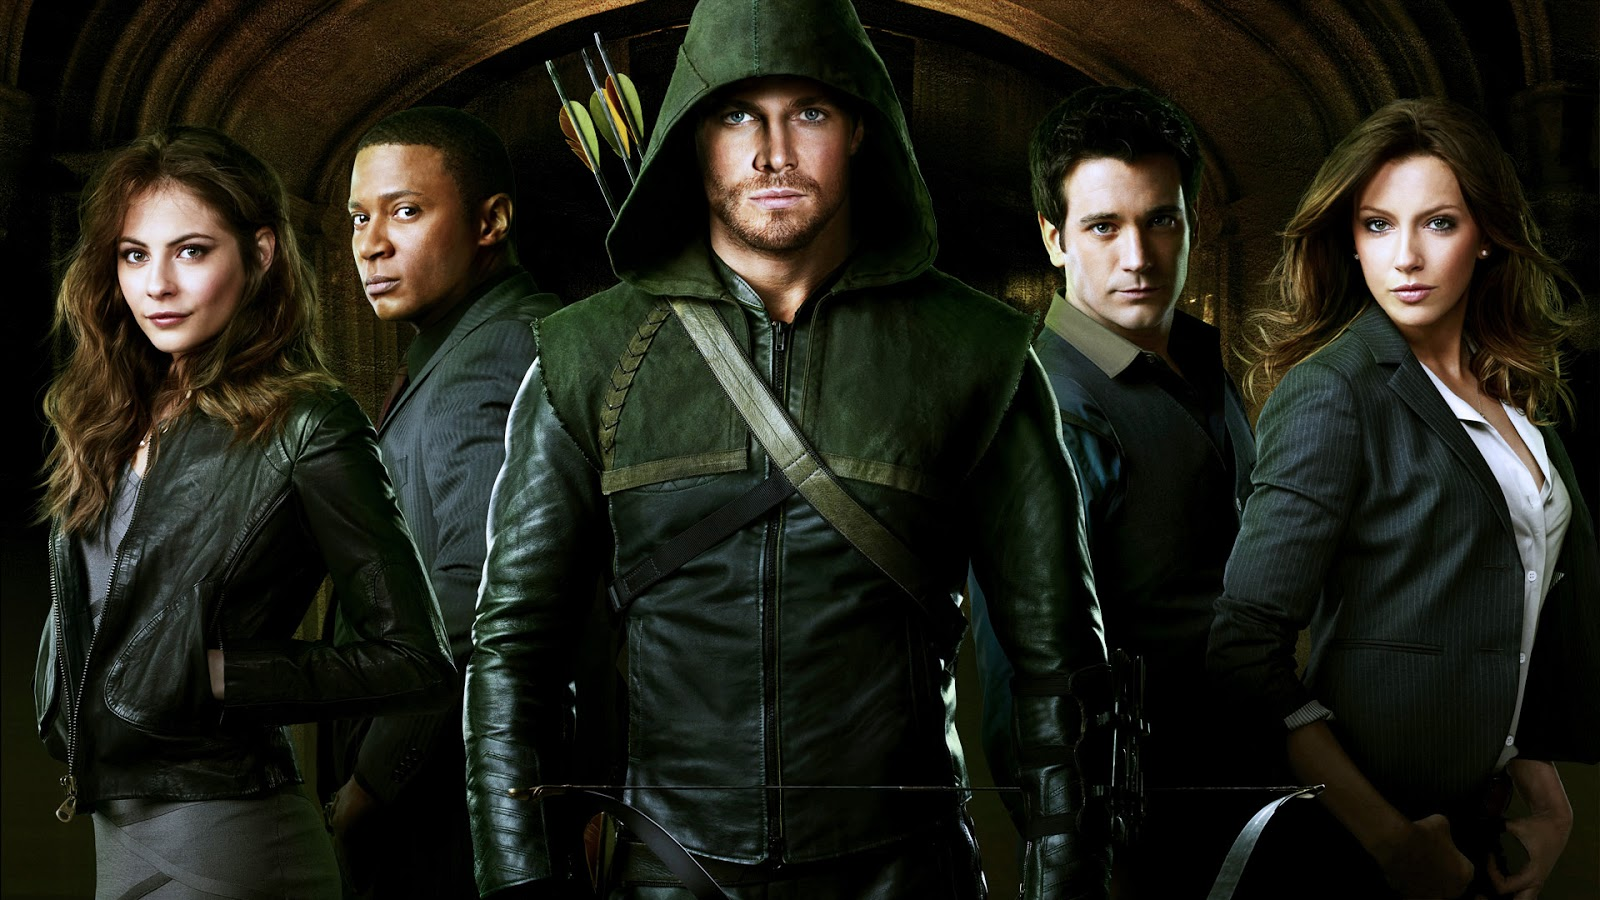 Photo of 10 Mind-Blowing Characters From Arrow TV Series